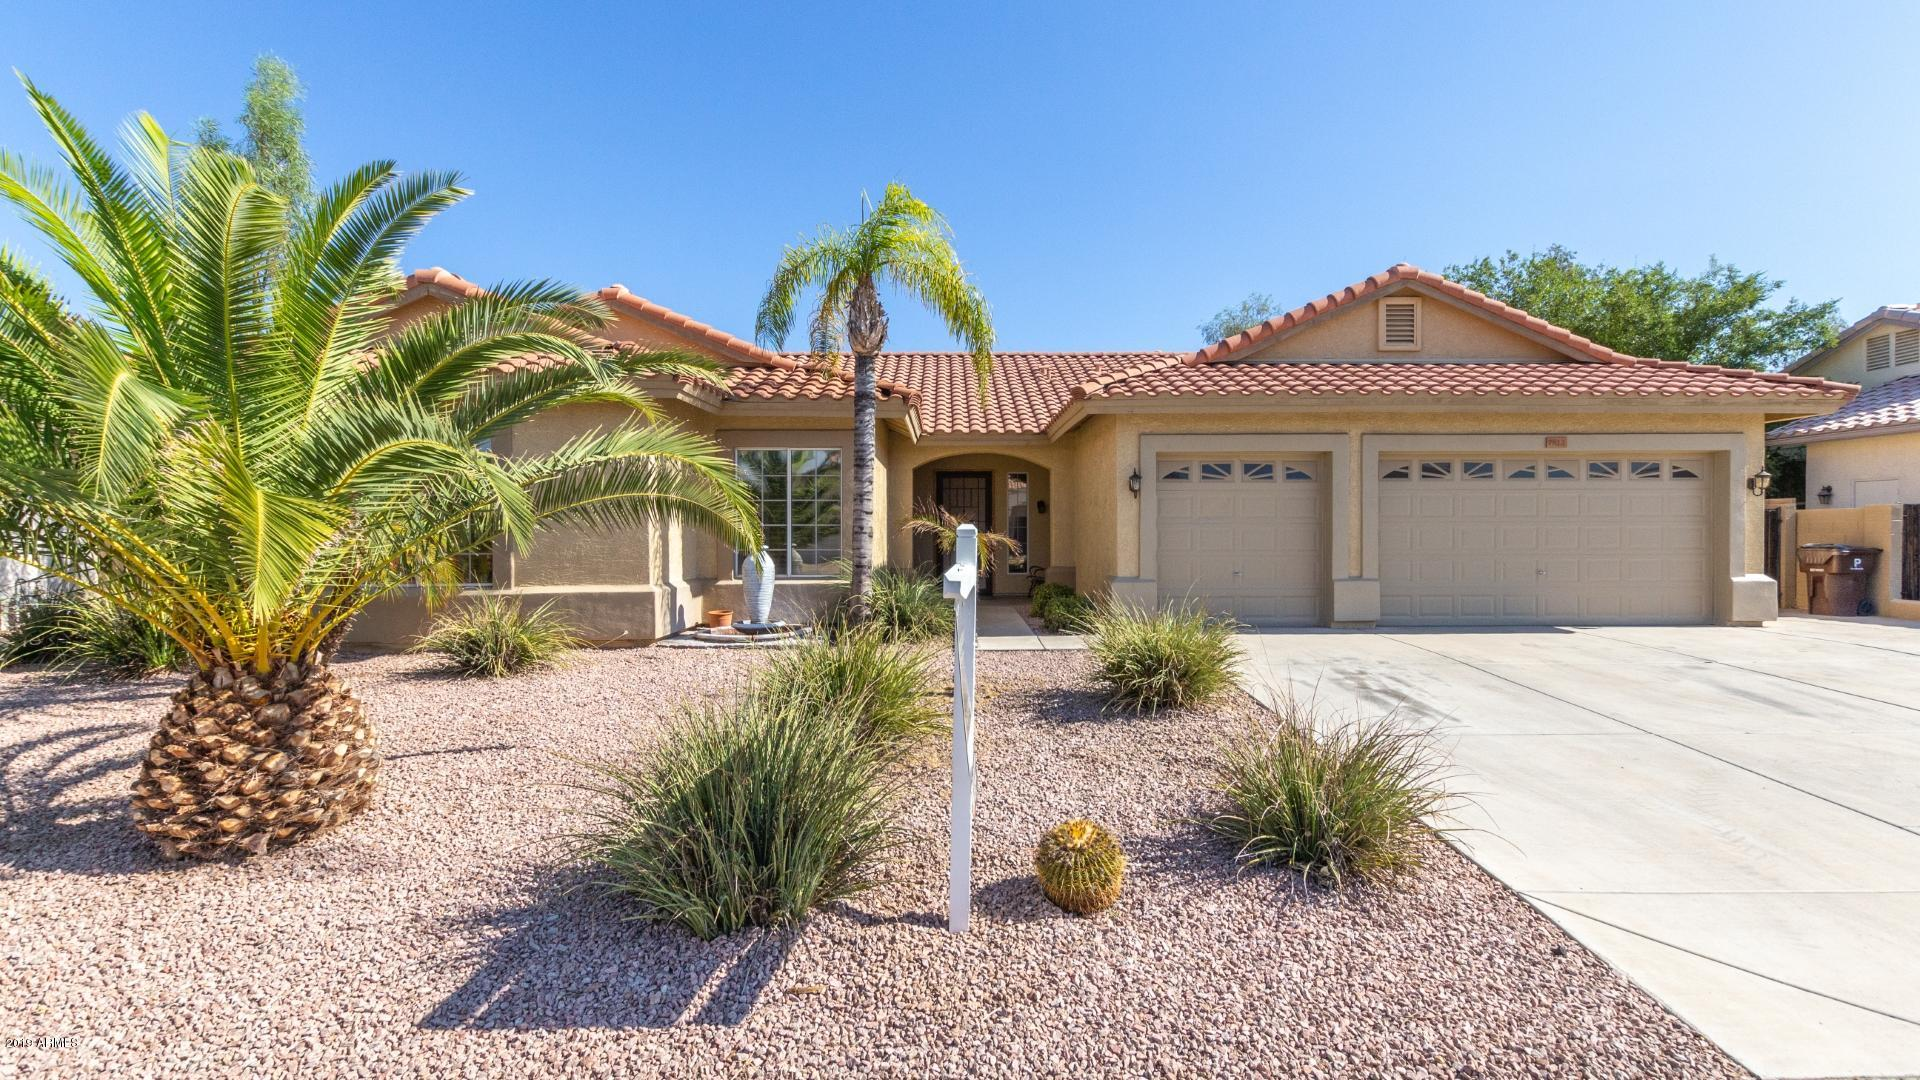 7812 W CARIBBEAN Lane, Peoria in Maricopa County, AZ 85381 Home for Sale